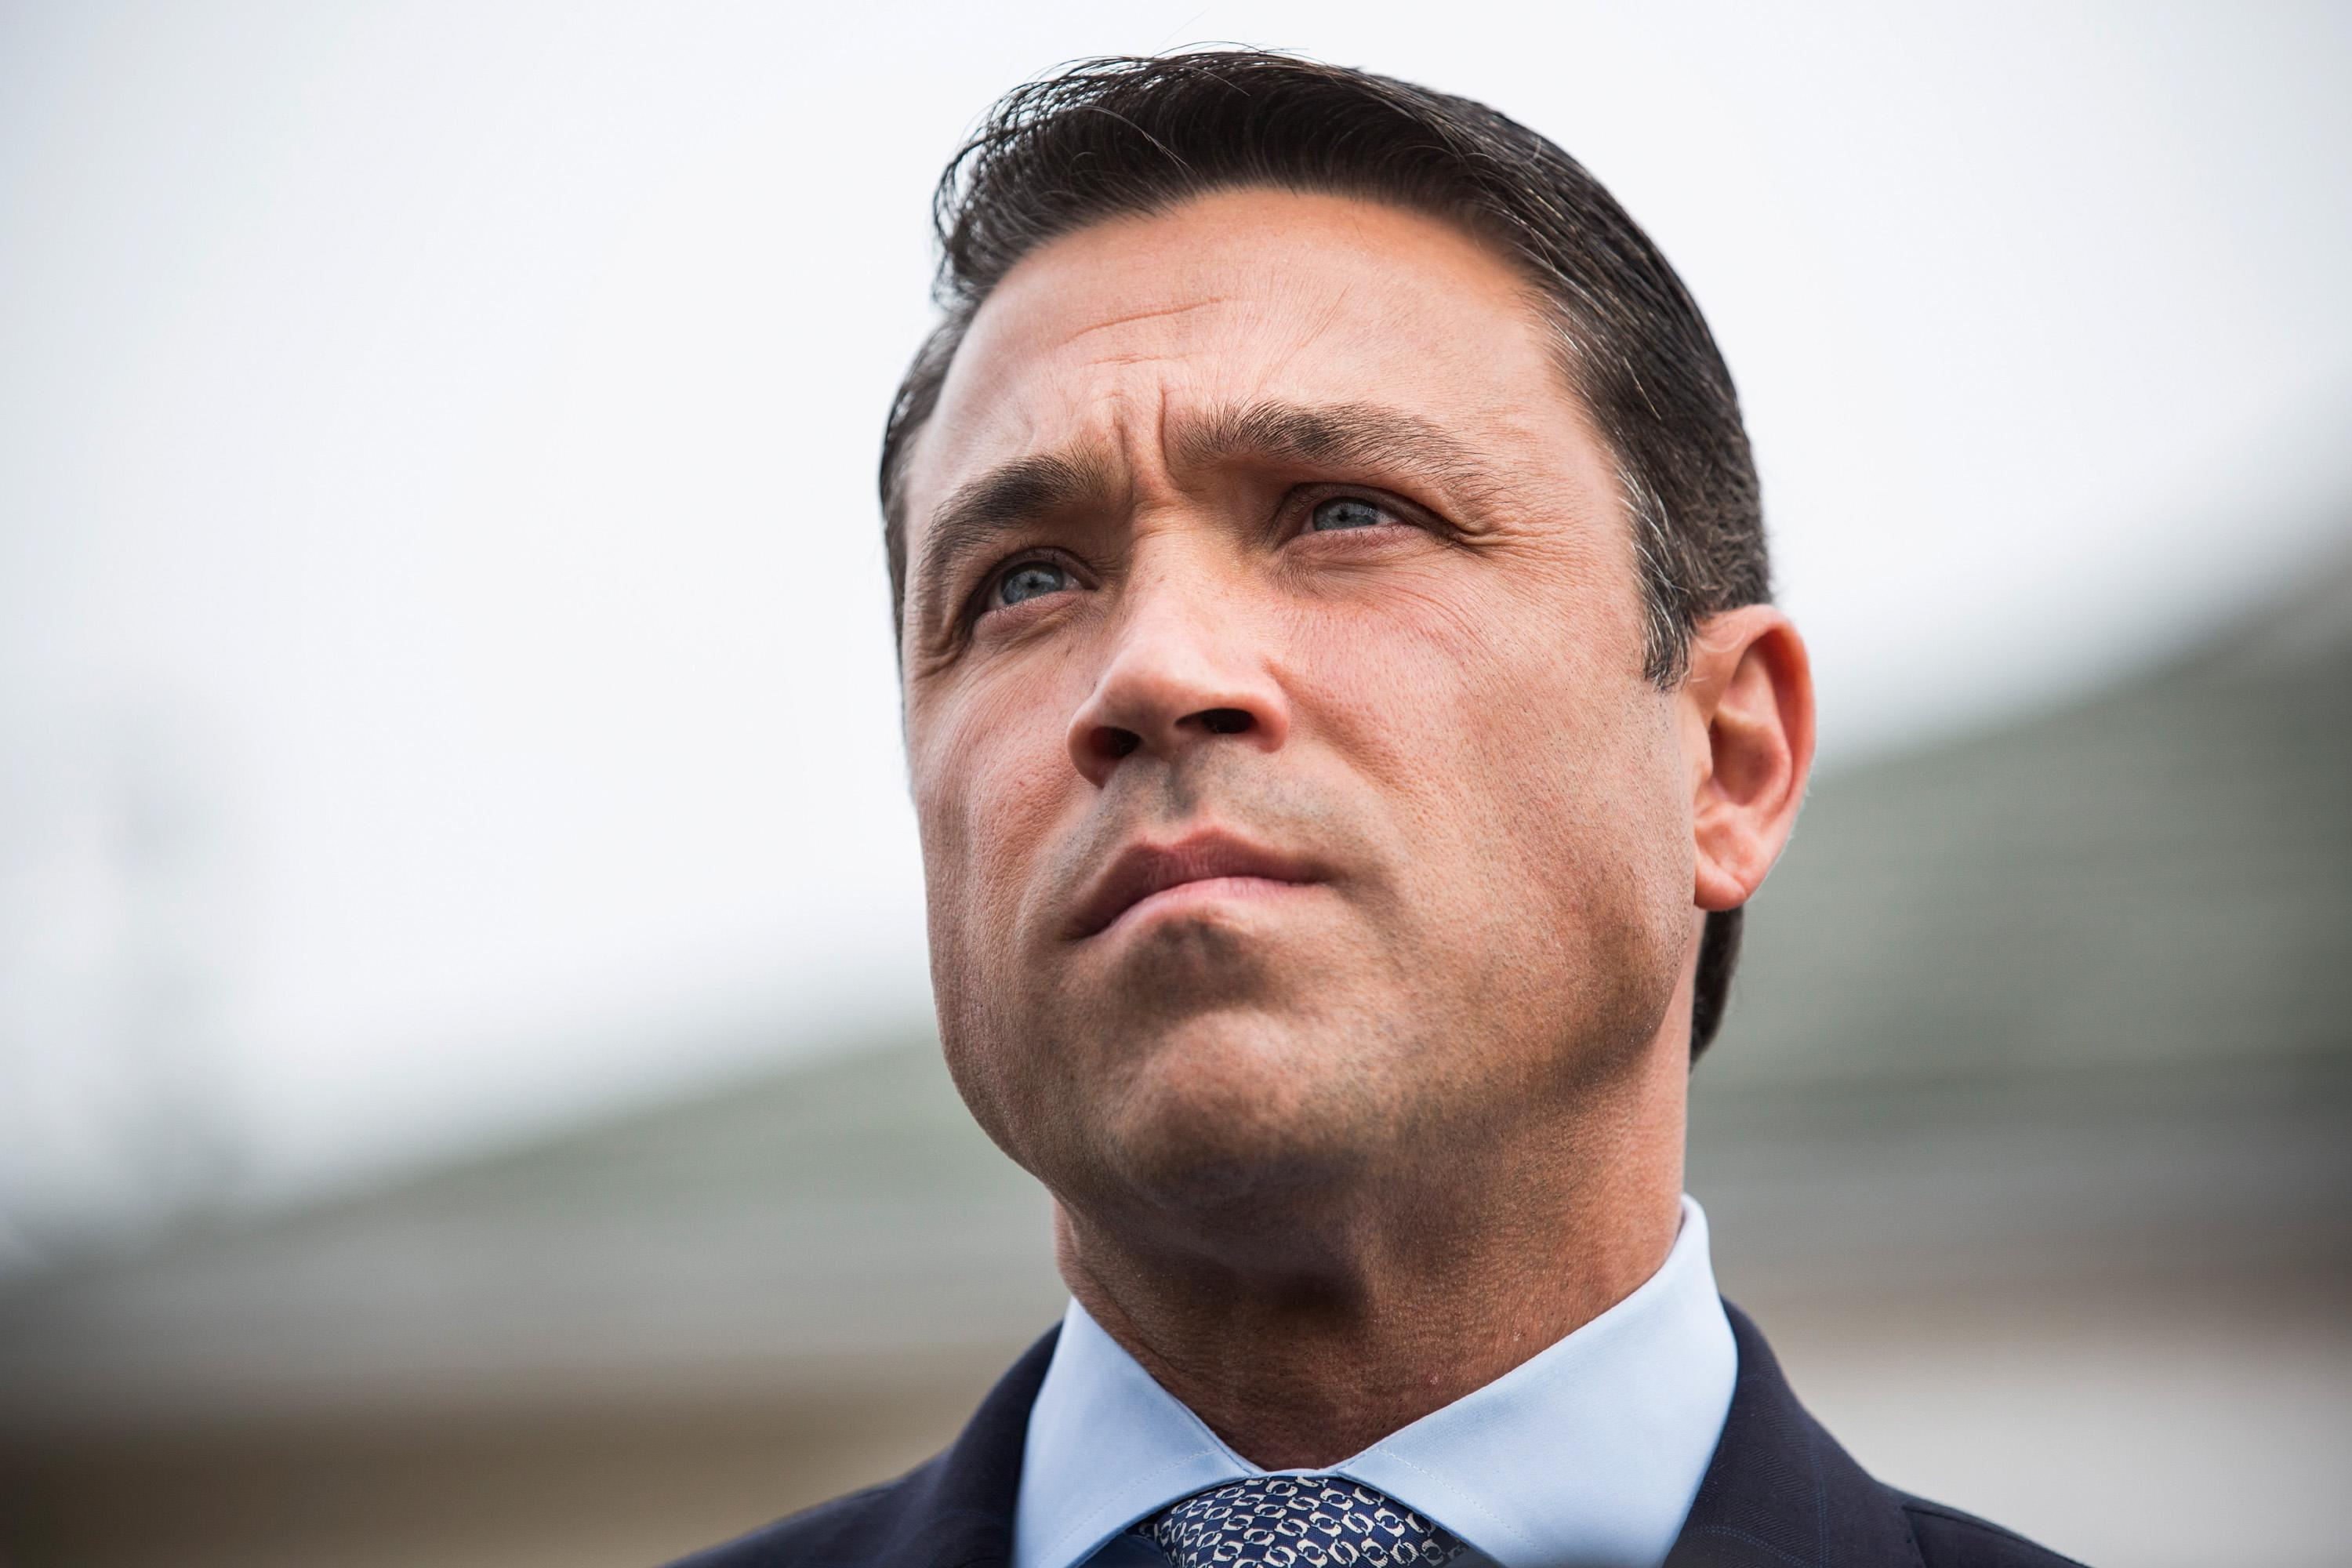 US congressman pleads guilty to tax evasion